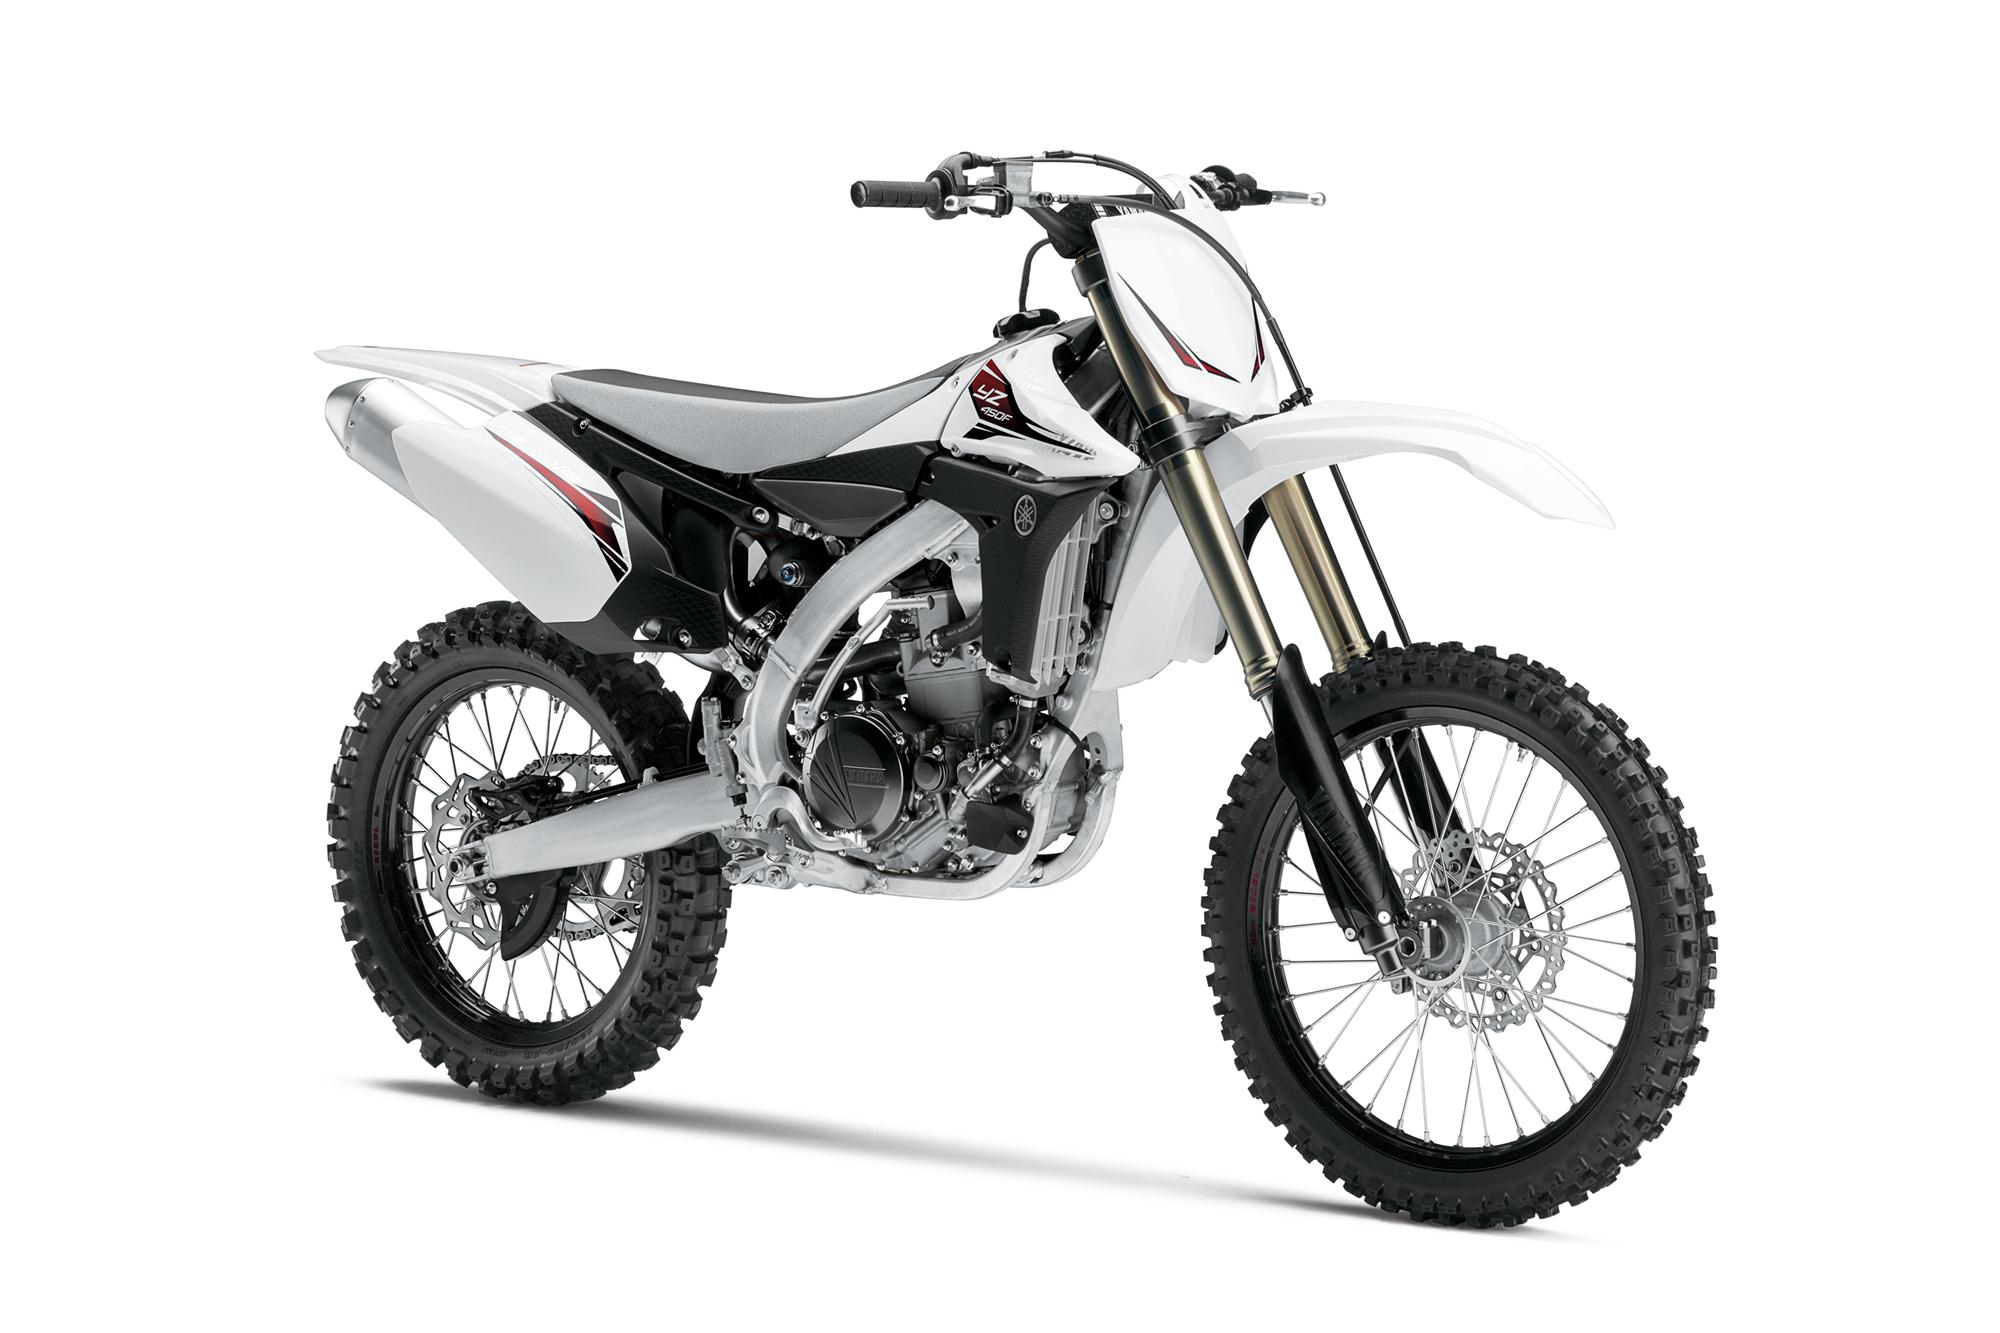 2013 Yamaha YZ450F, A Fun and Powerful Dirt Beast